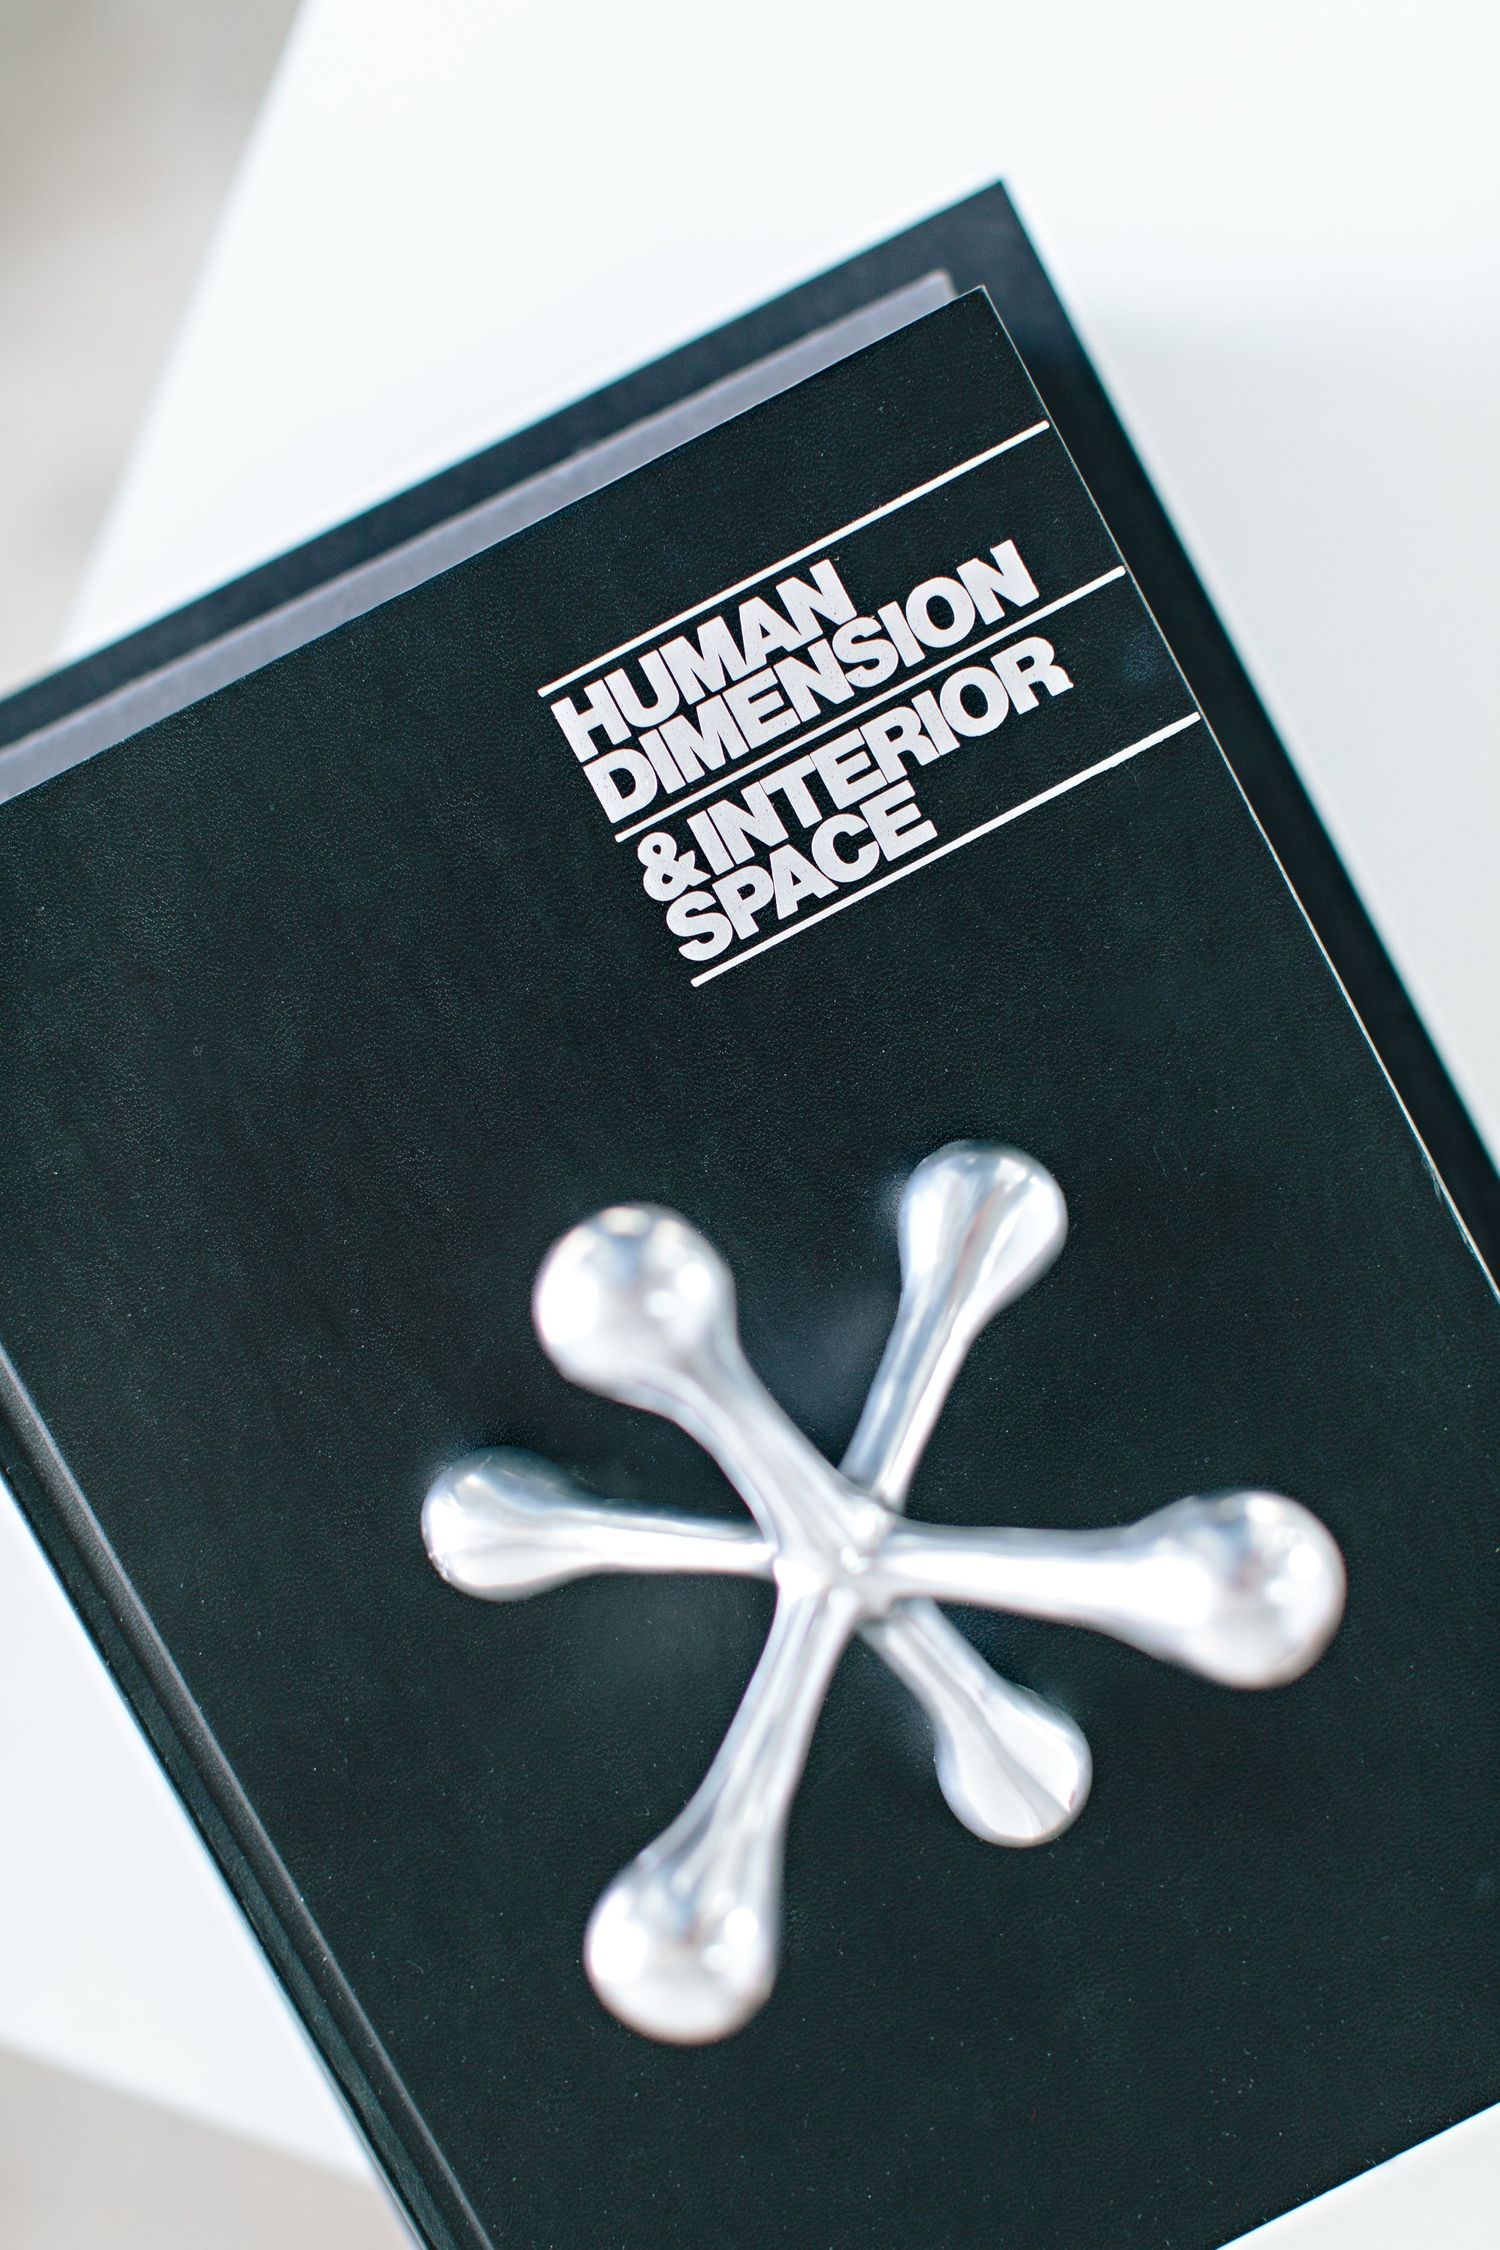 interior designer book